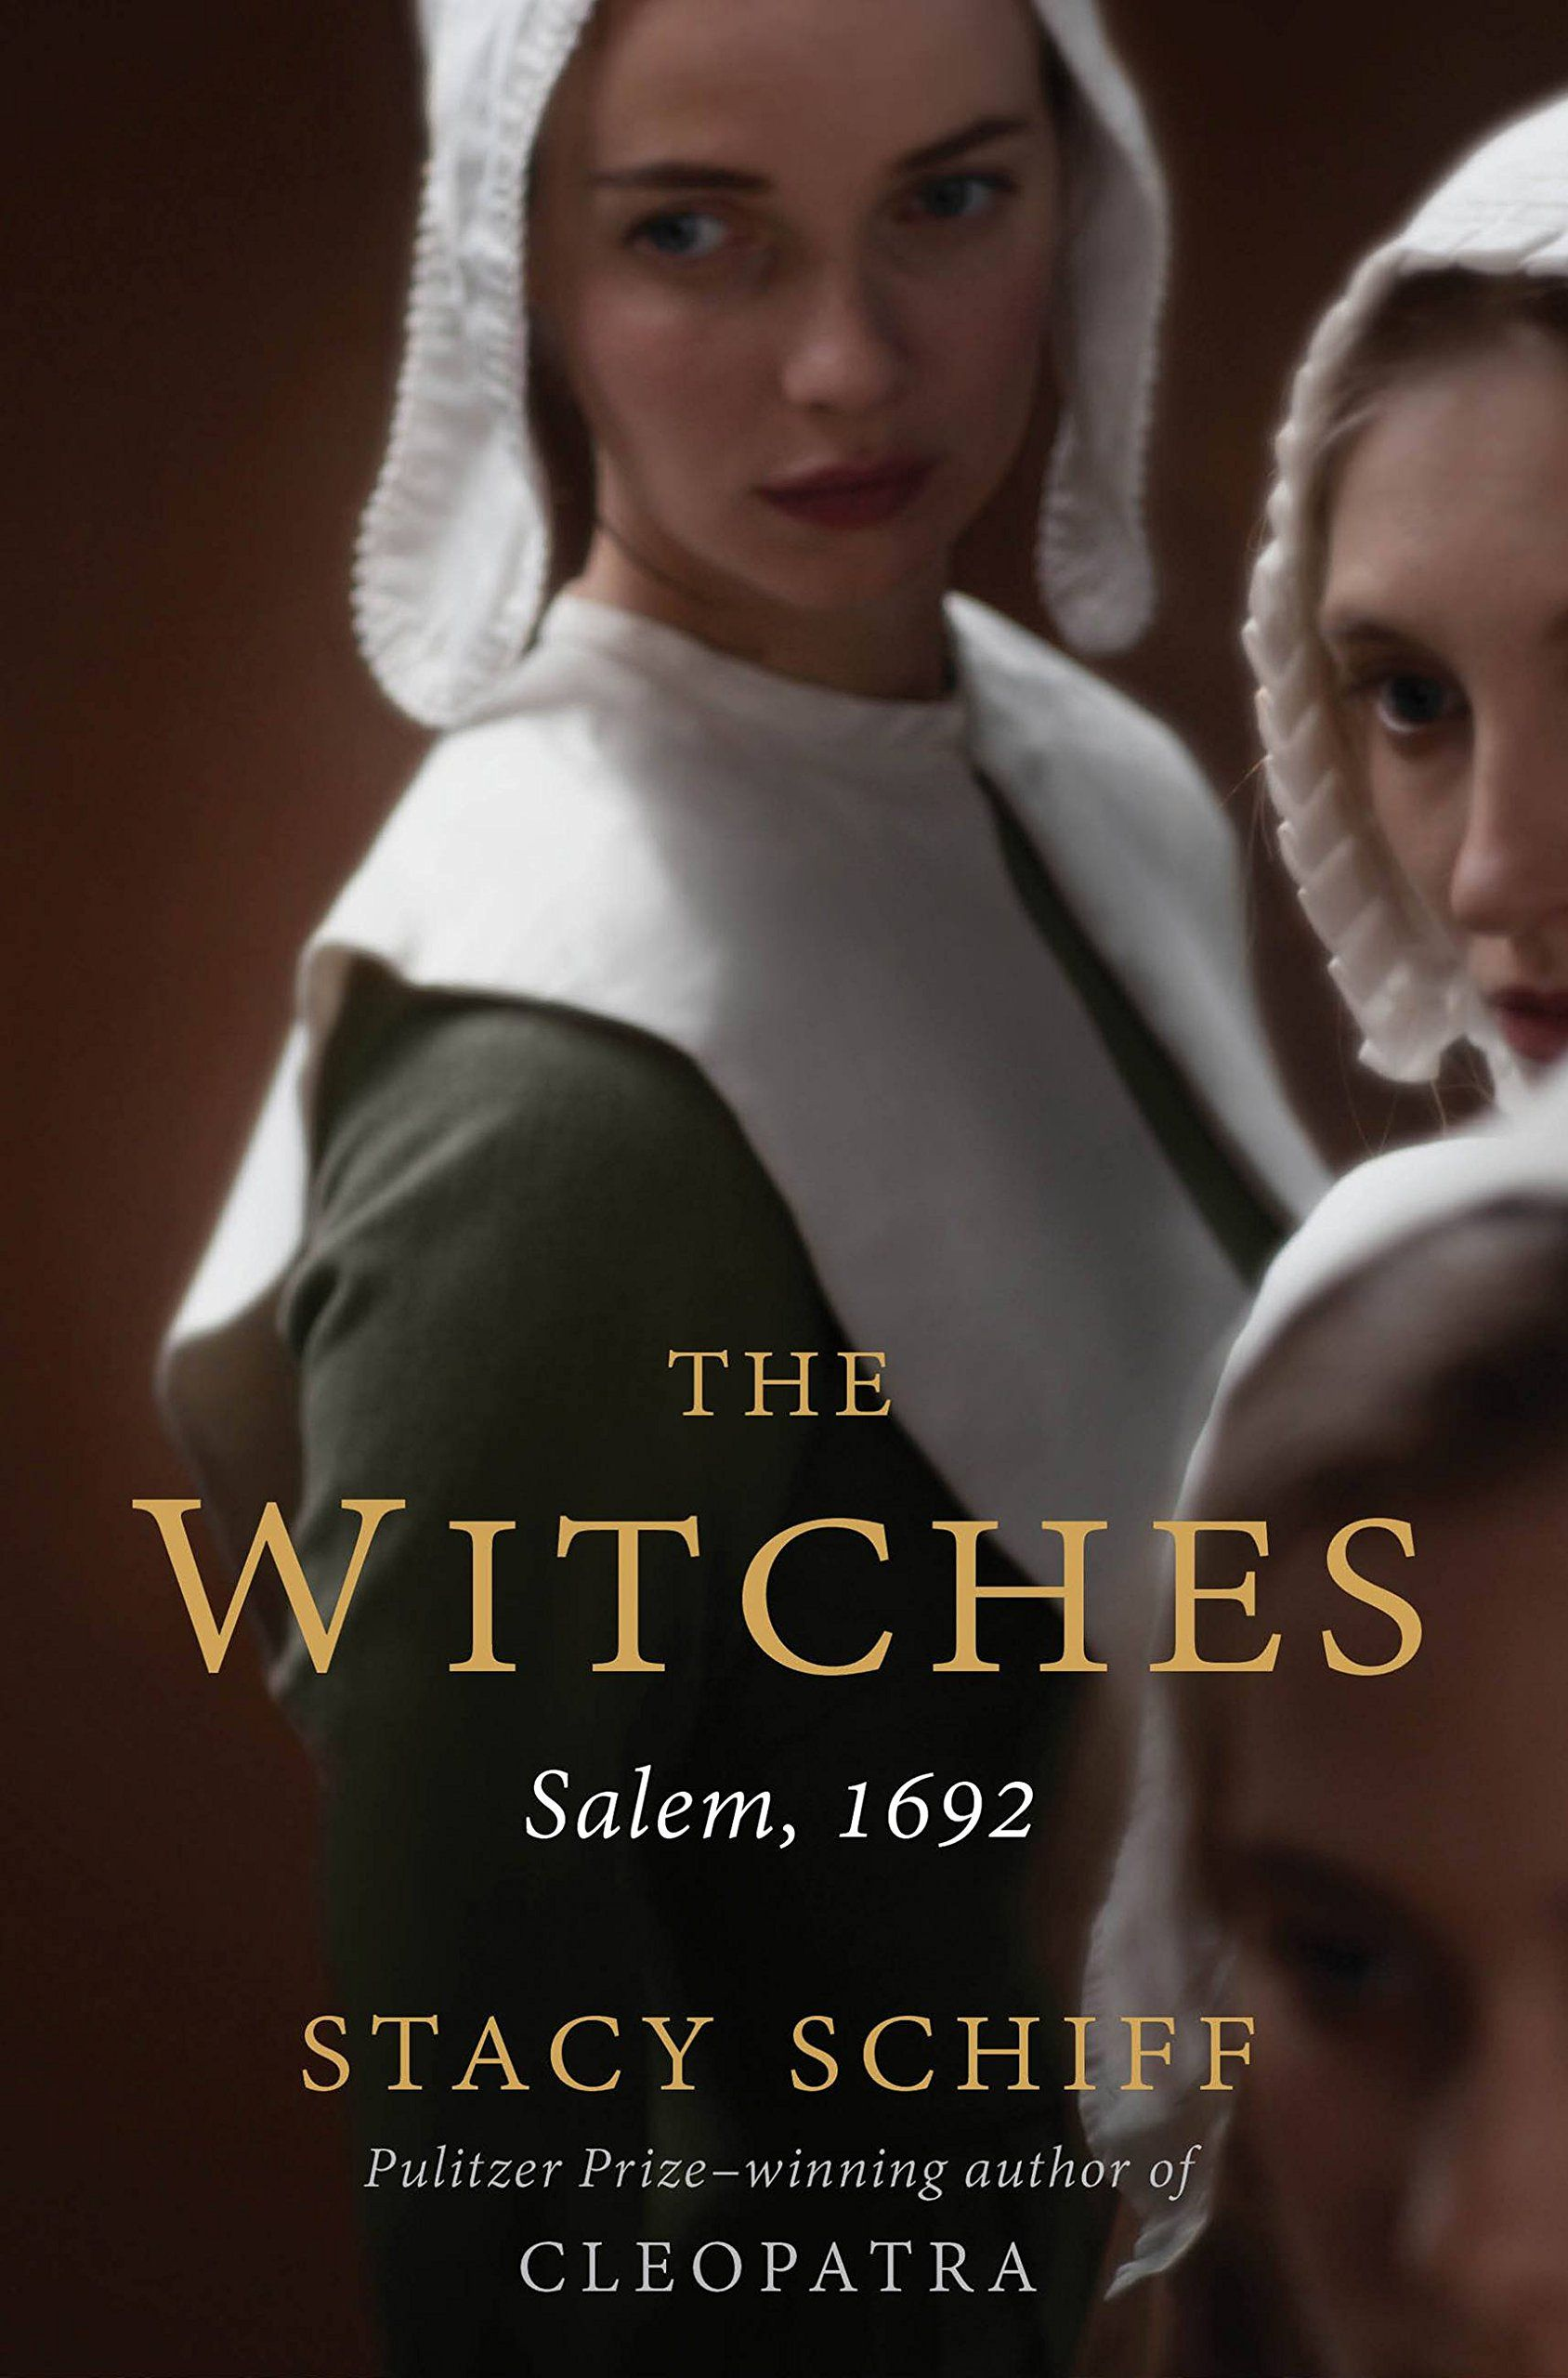 The Witches: Salem, 1692 By Stacy Schiff